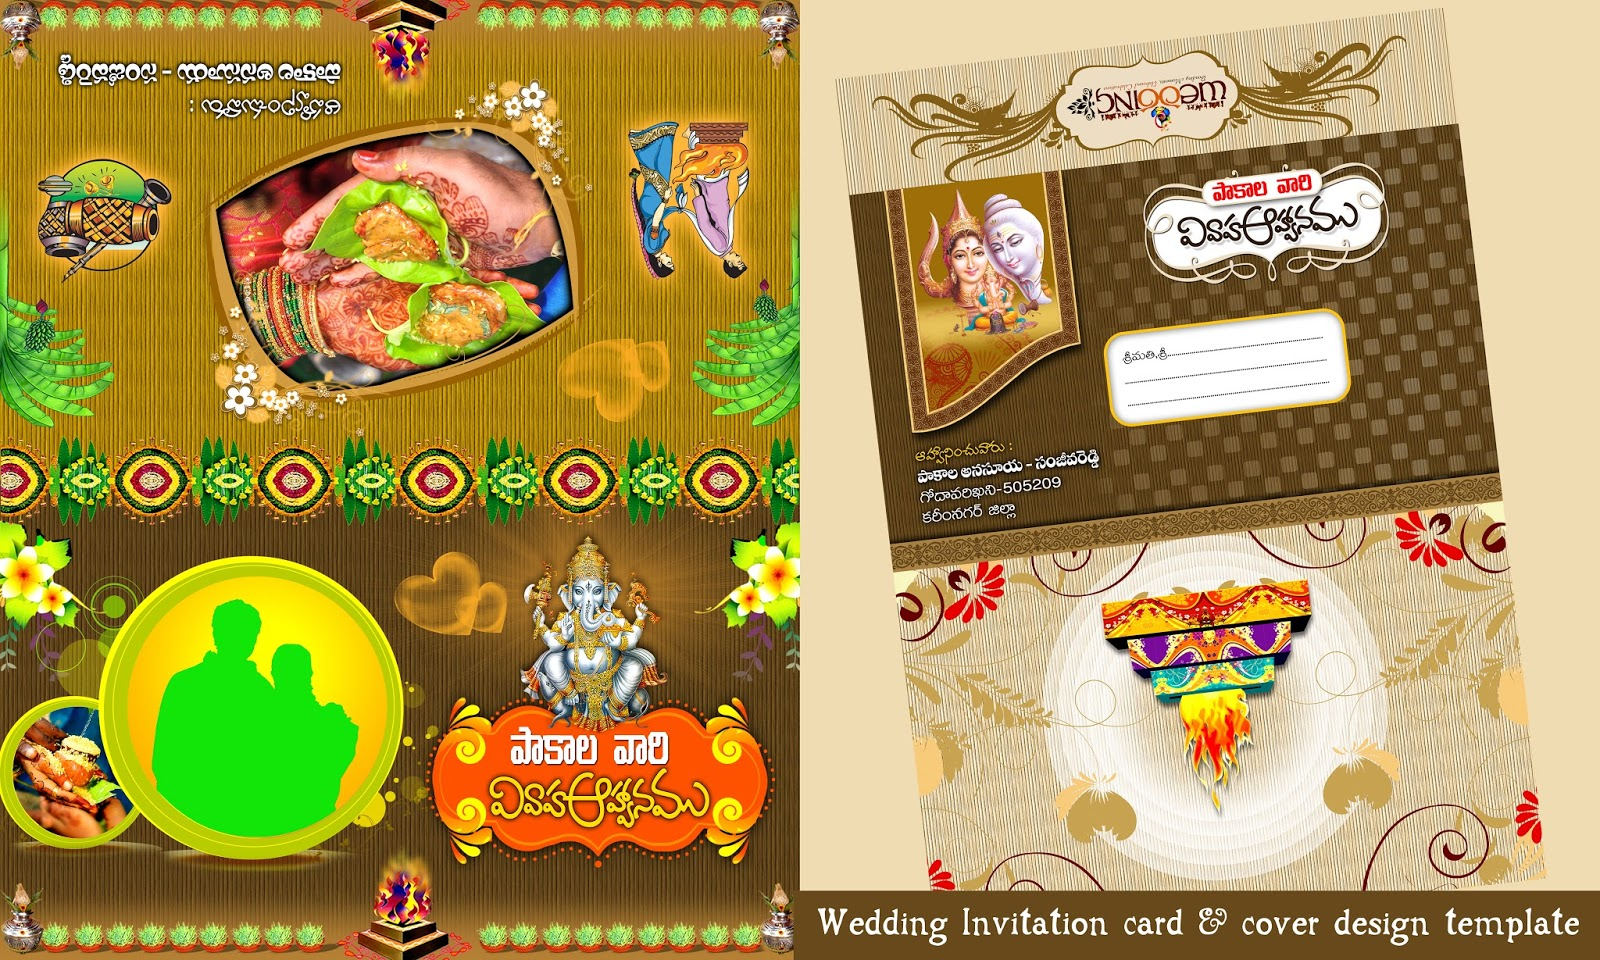 Indian Wedding Invitation Card And Cover Design Psd   Free Wedding Invitation Card Templates